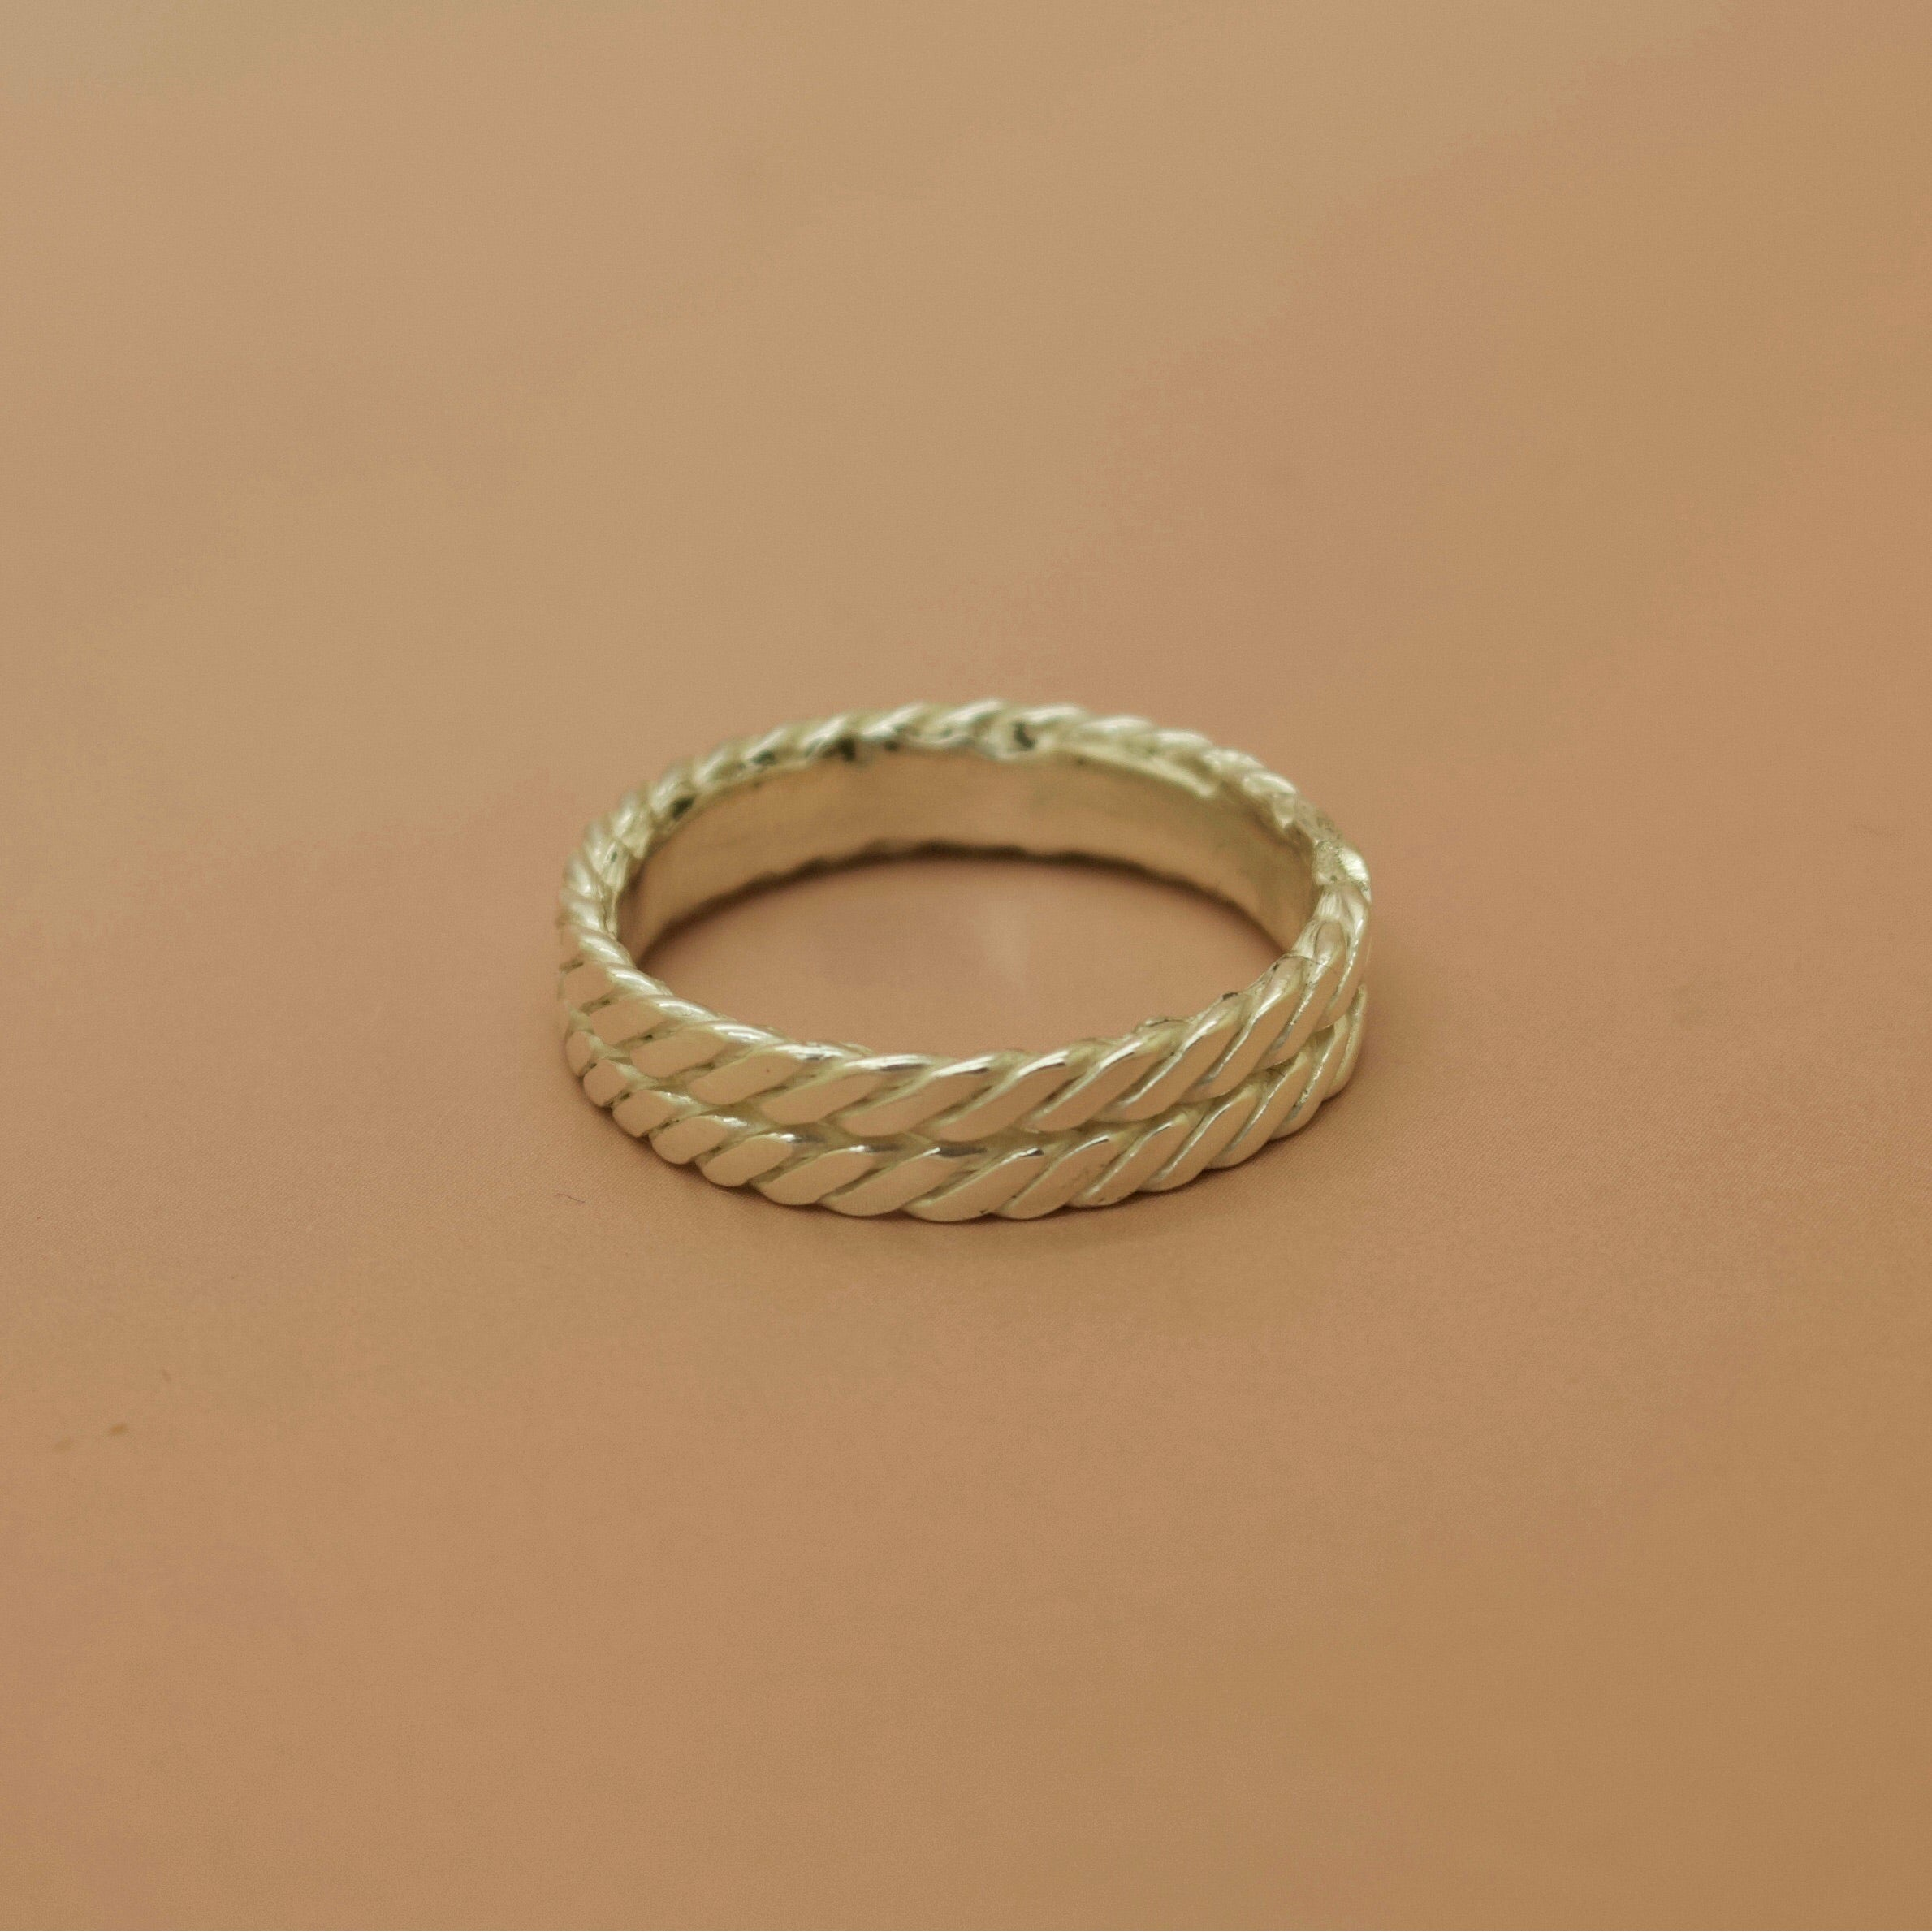 Bound II Ring - Silver or Gold - Ring The Serpents Club